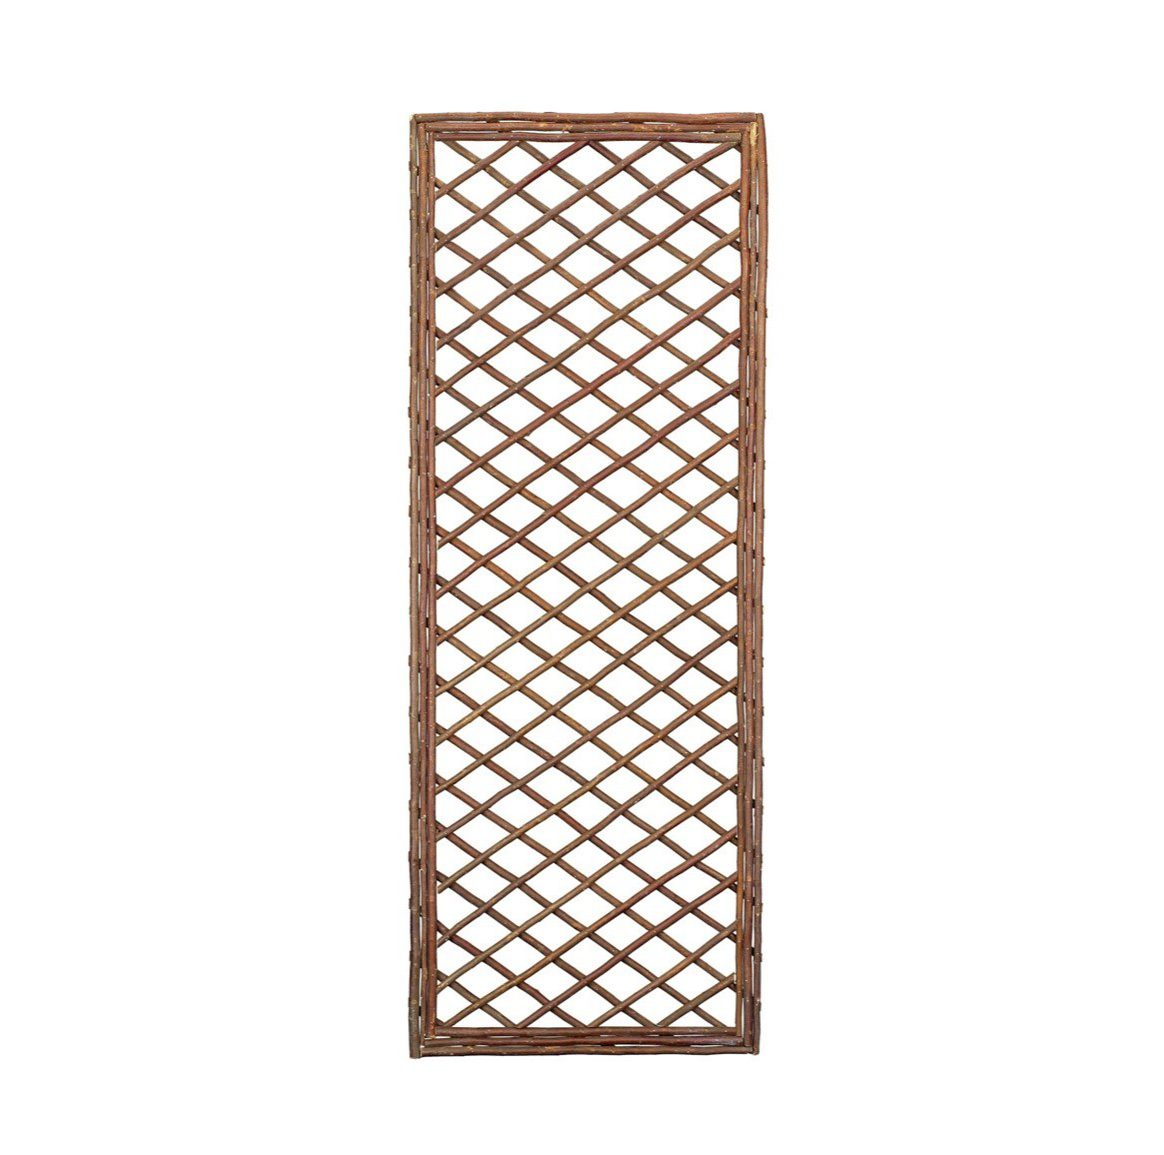 Gardman 1.2m x 0.45m Framed Willow Trellis Panel